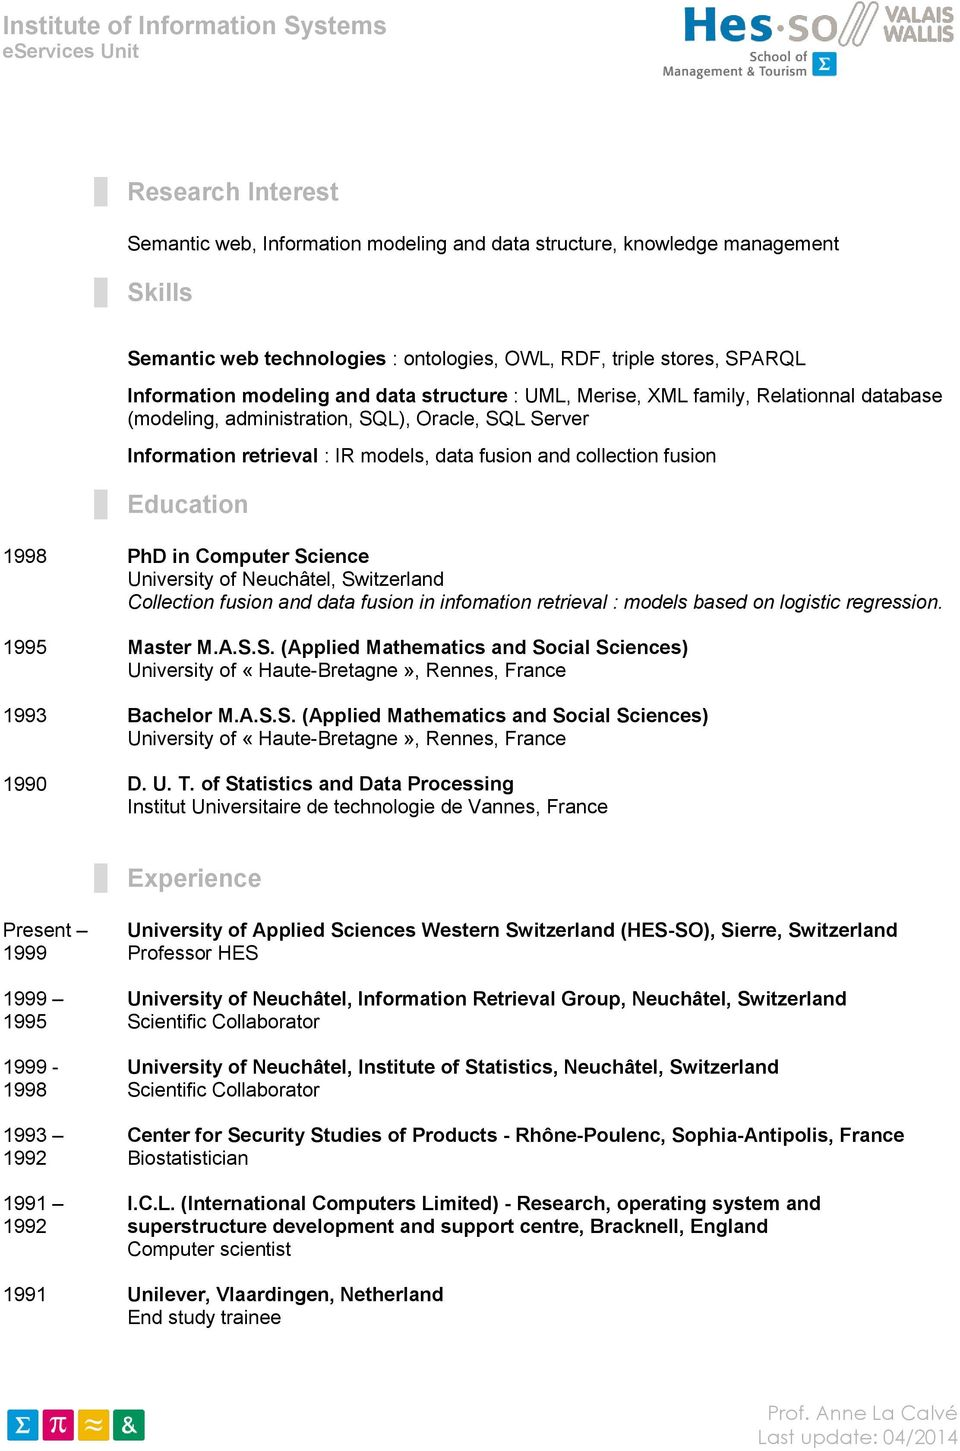 PhD in Computer Science University of Neuchâtel, Switzerland Collection fusion and data fusion in infomation retrieval : models based on logistic regression. 1995 Master M.A.S.S. (Applied Mathematics and Social Sciences) University of «Haute-Bretagne», Rennes, France 1993 Bachelor M.